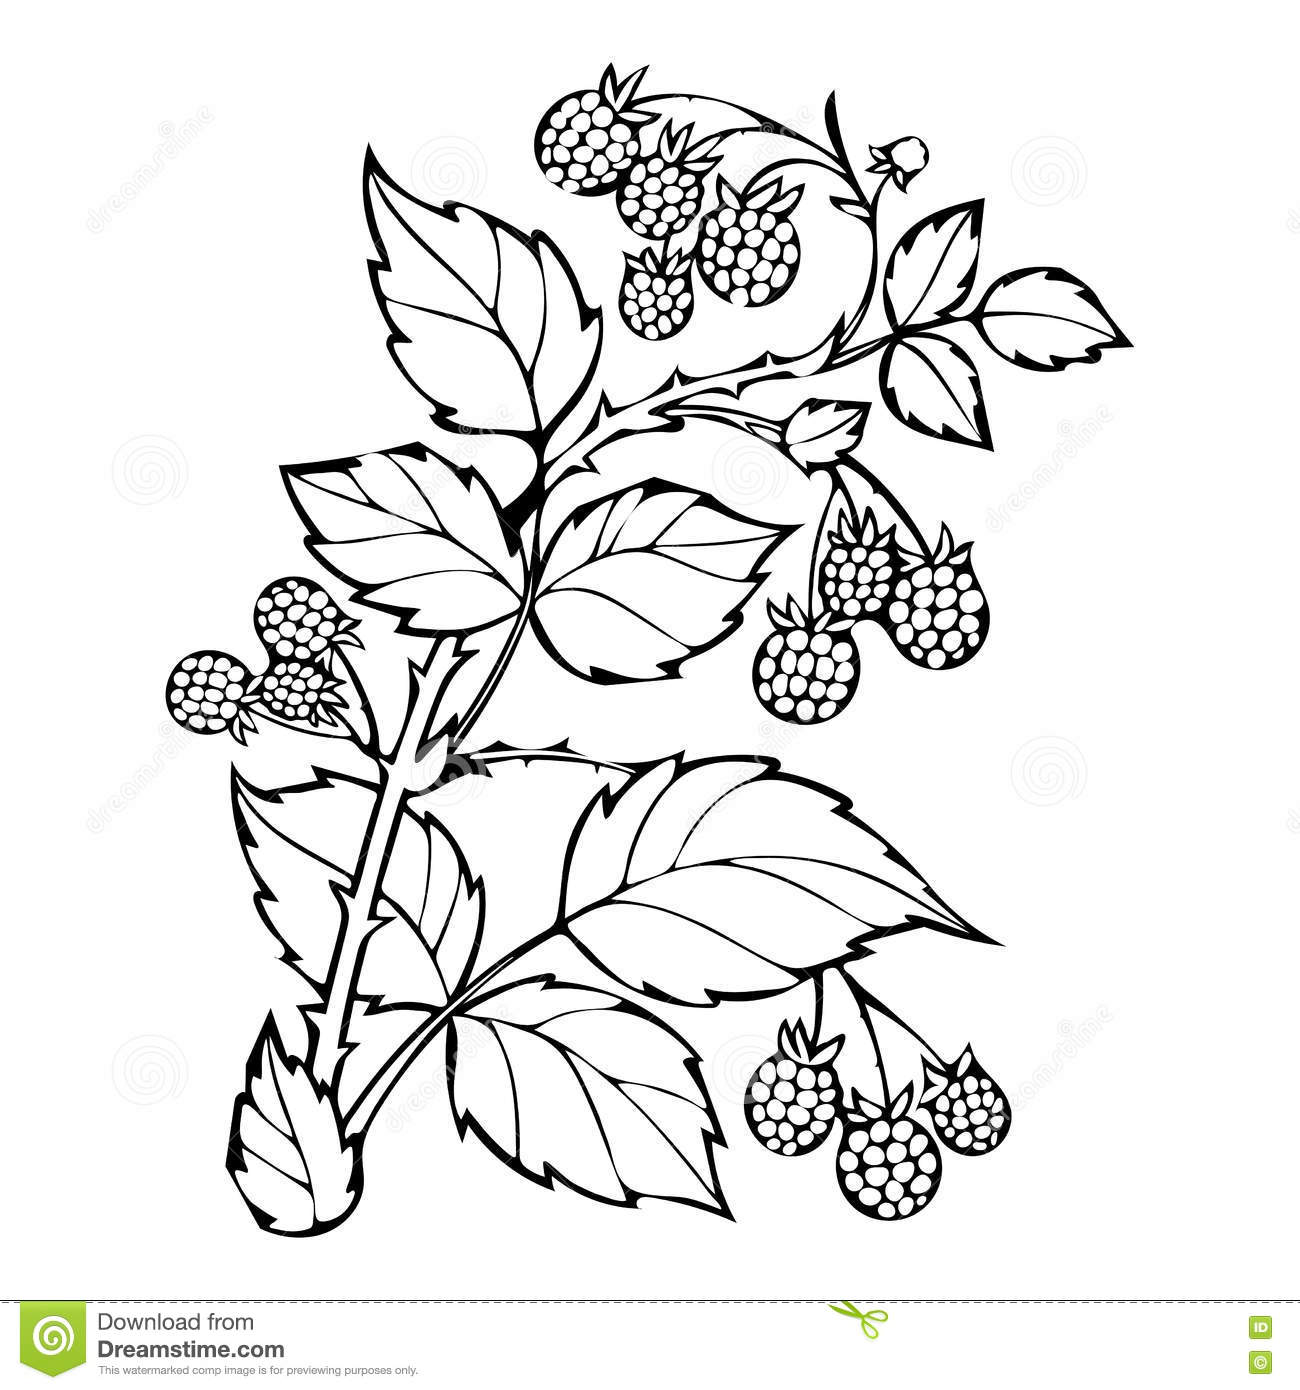 Raspberries Coloring Book Sketch Black And White